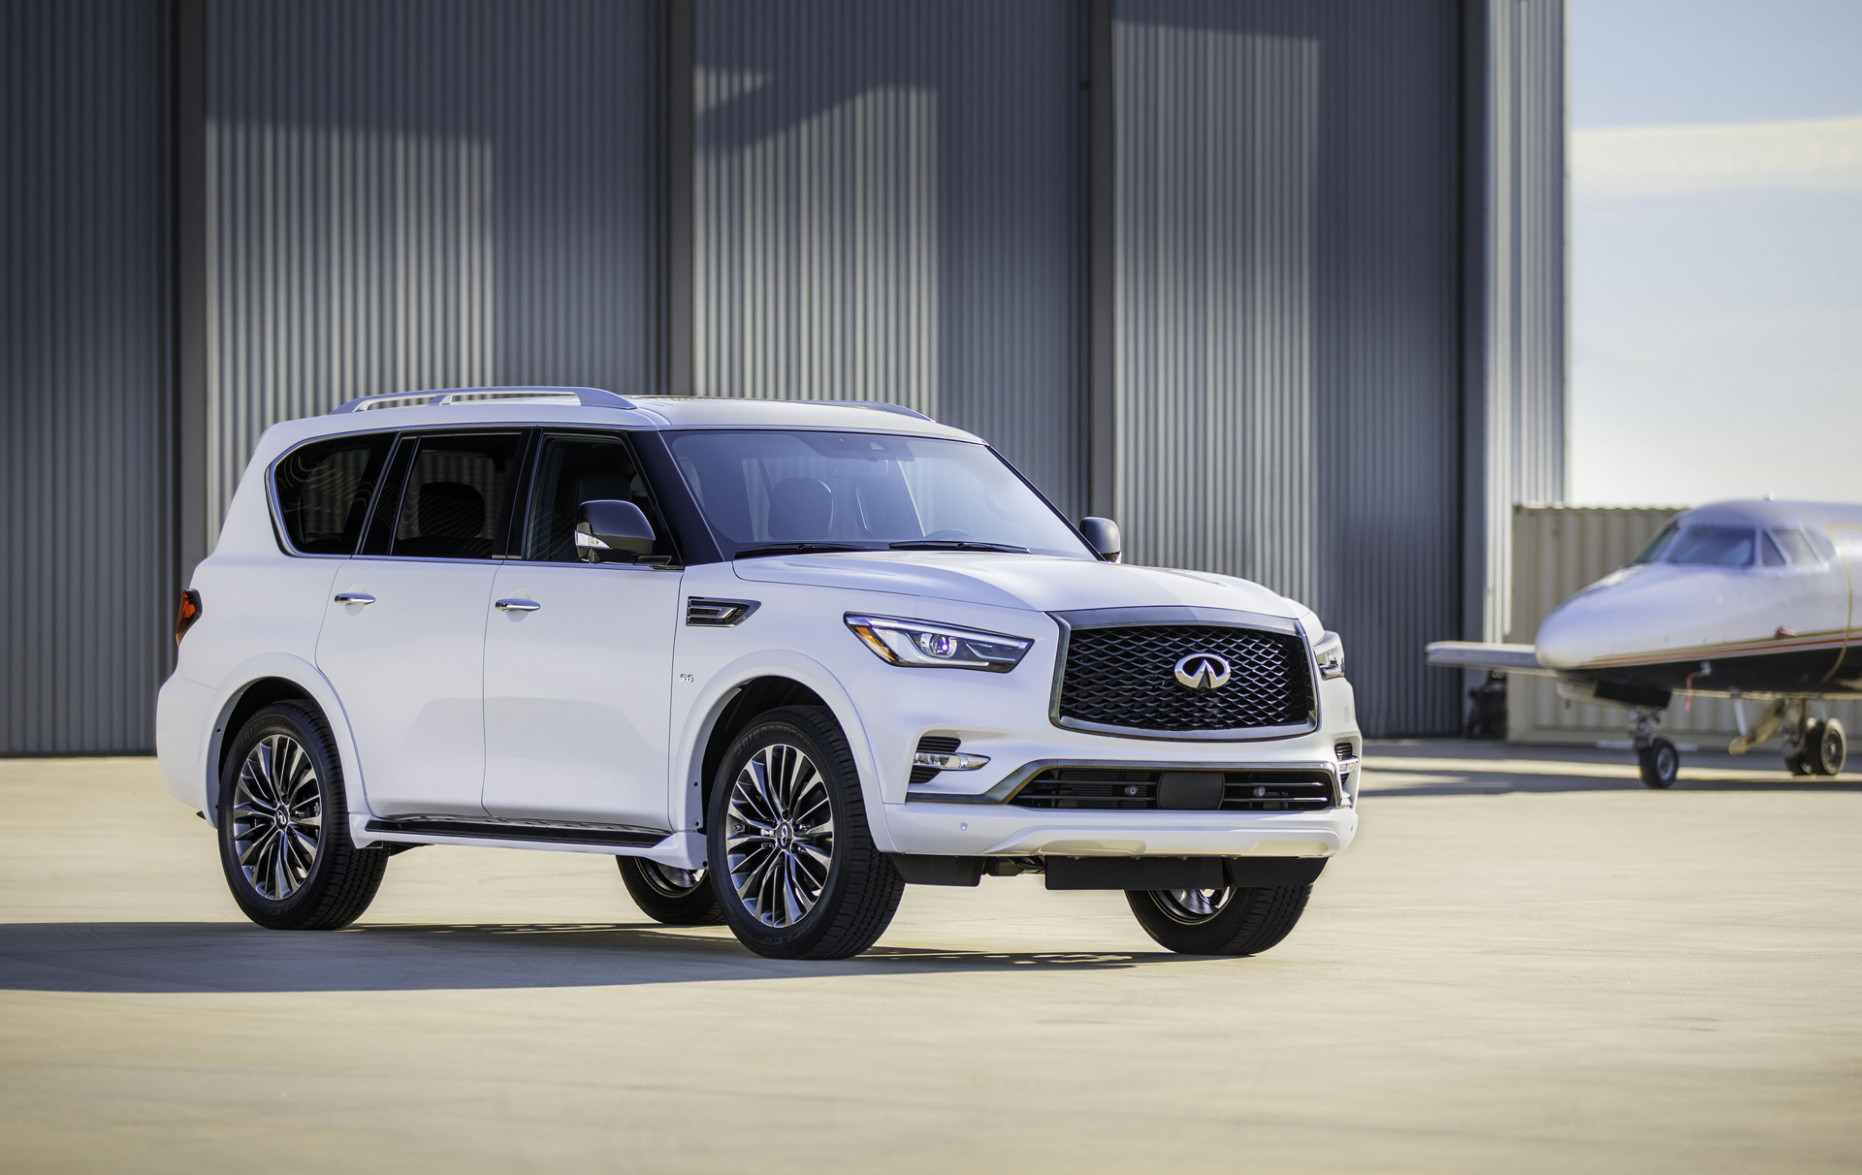 Price When Does The 2022 Infiniti Qx80 Come Out